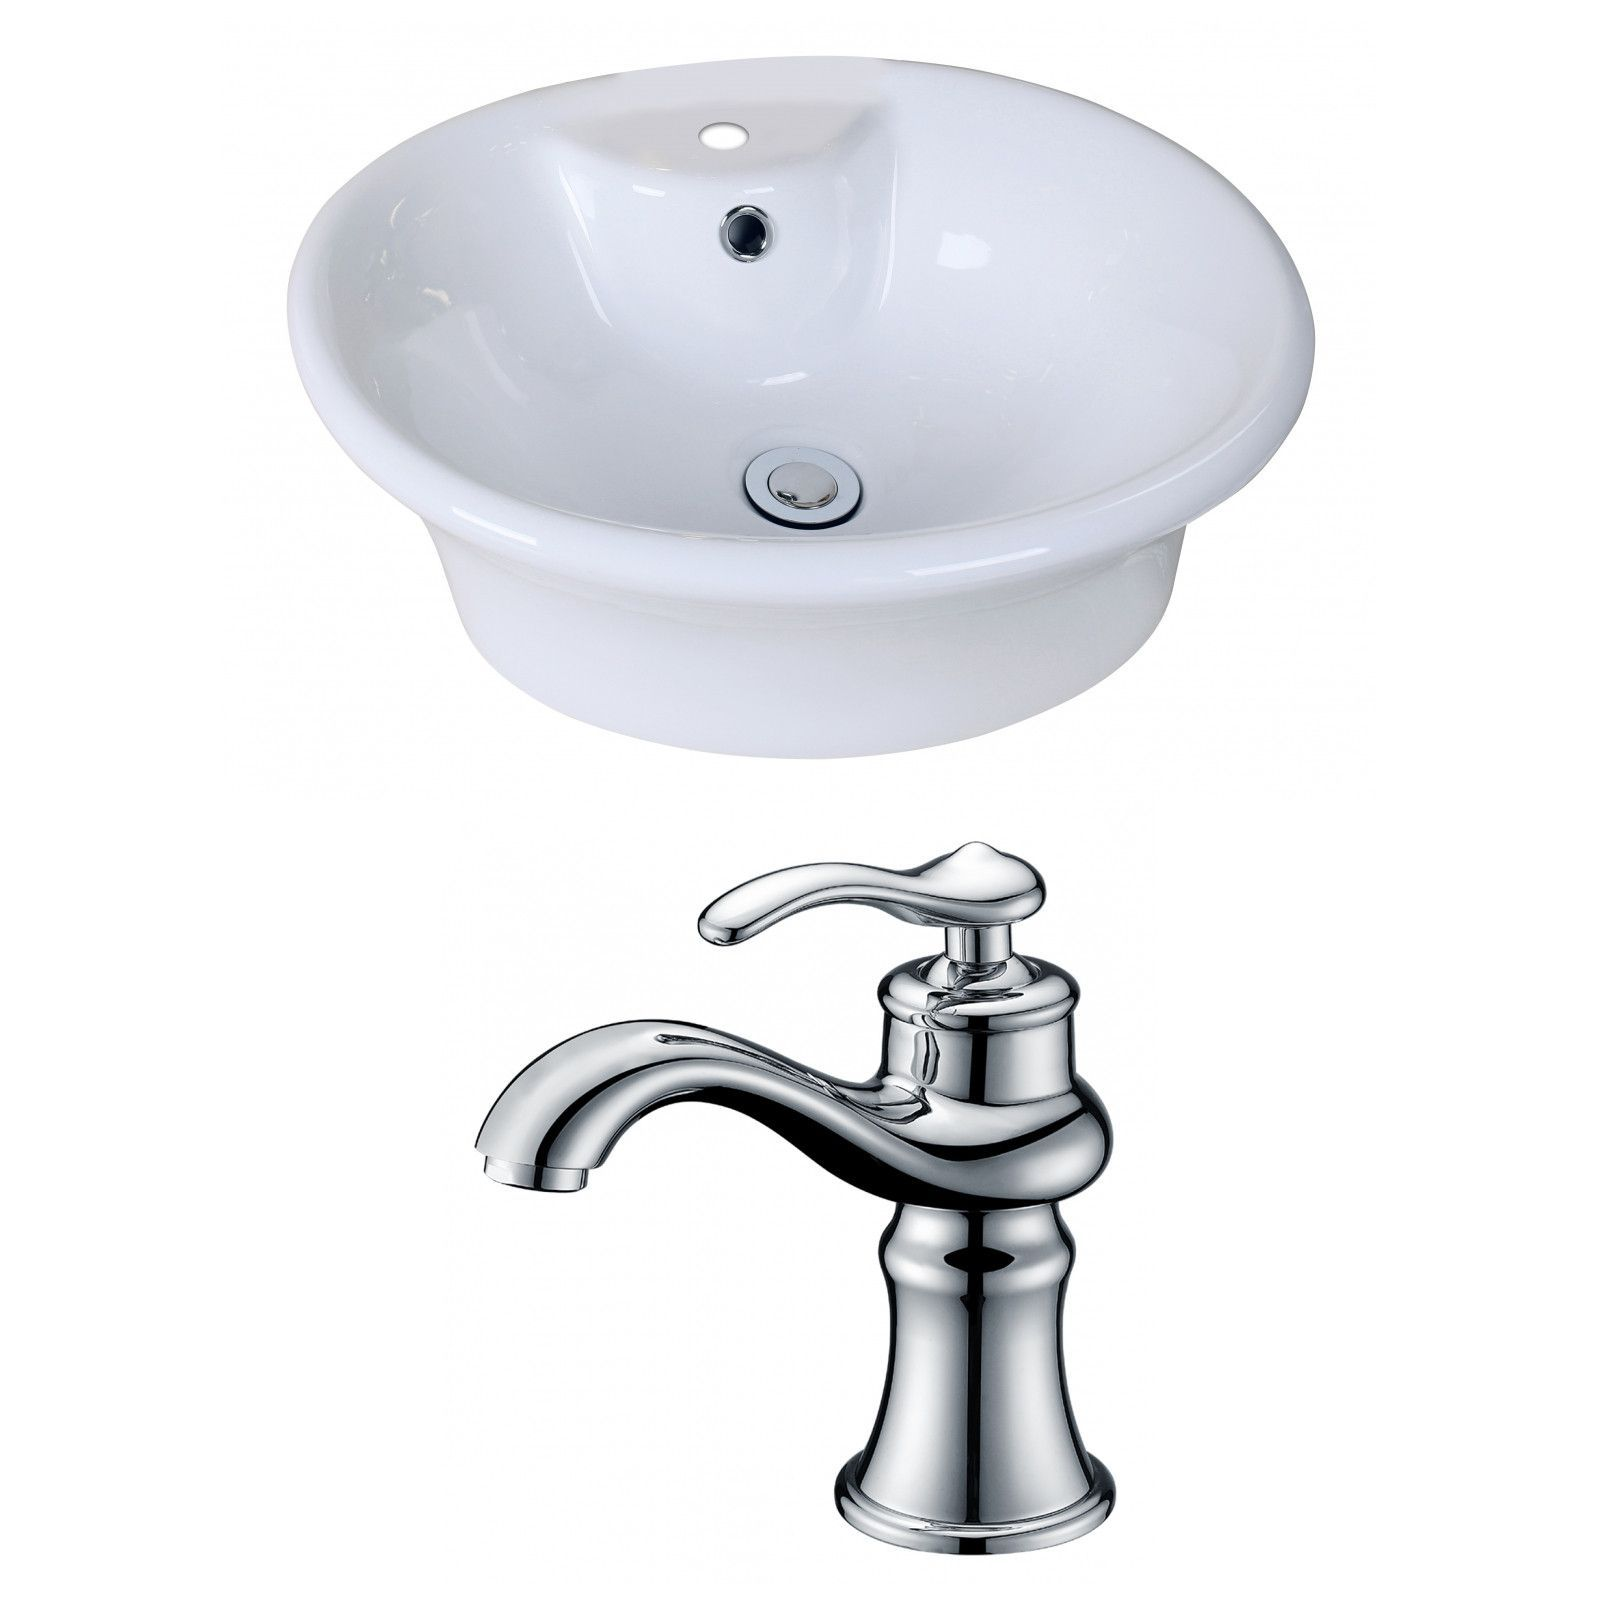 19-in. W x 15-in. D Oval Vessel Set In White Color With Single Hole CUPC Faucet